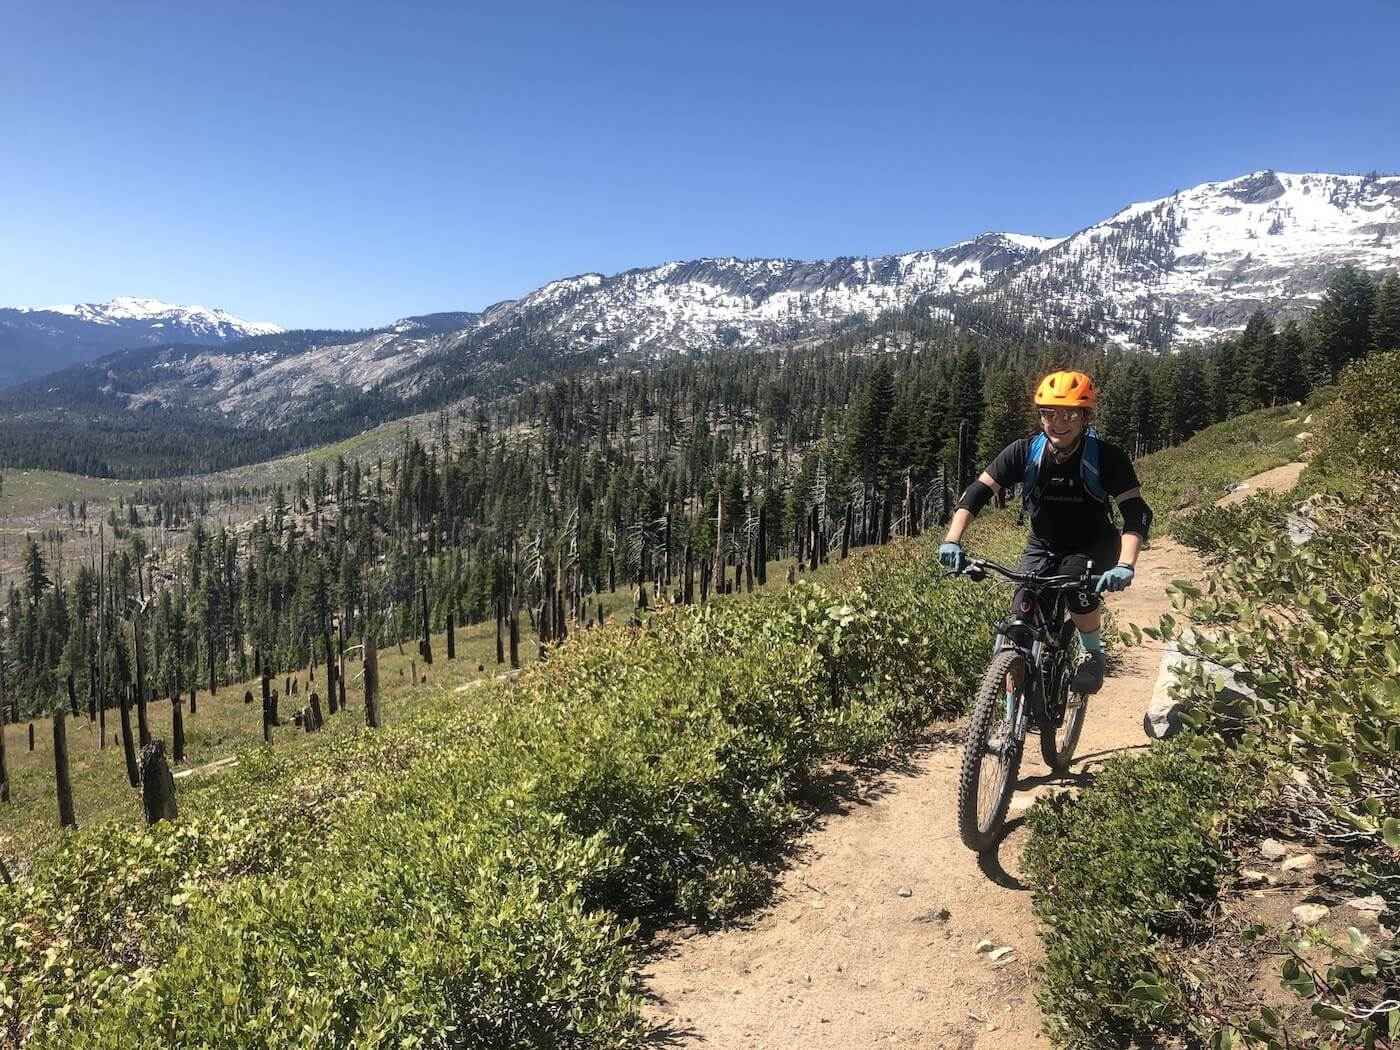 Tahoe Mountain biking trail using the best mountain bike chain lube to use in dry conditions